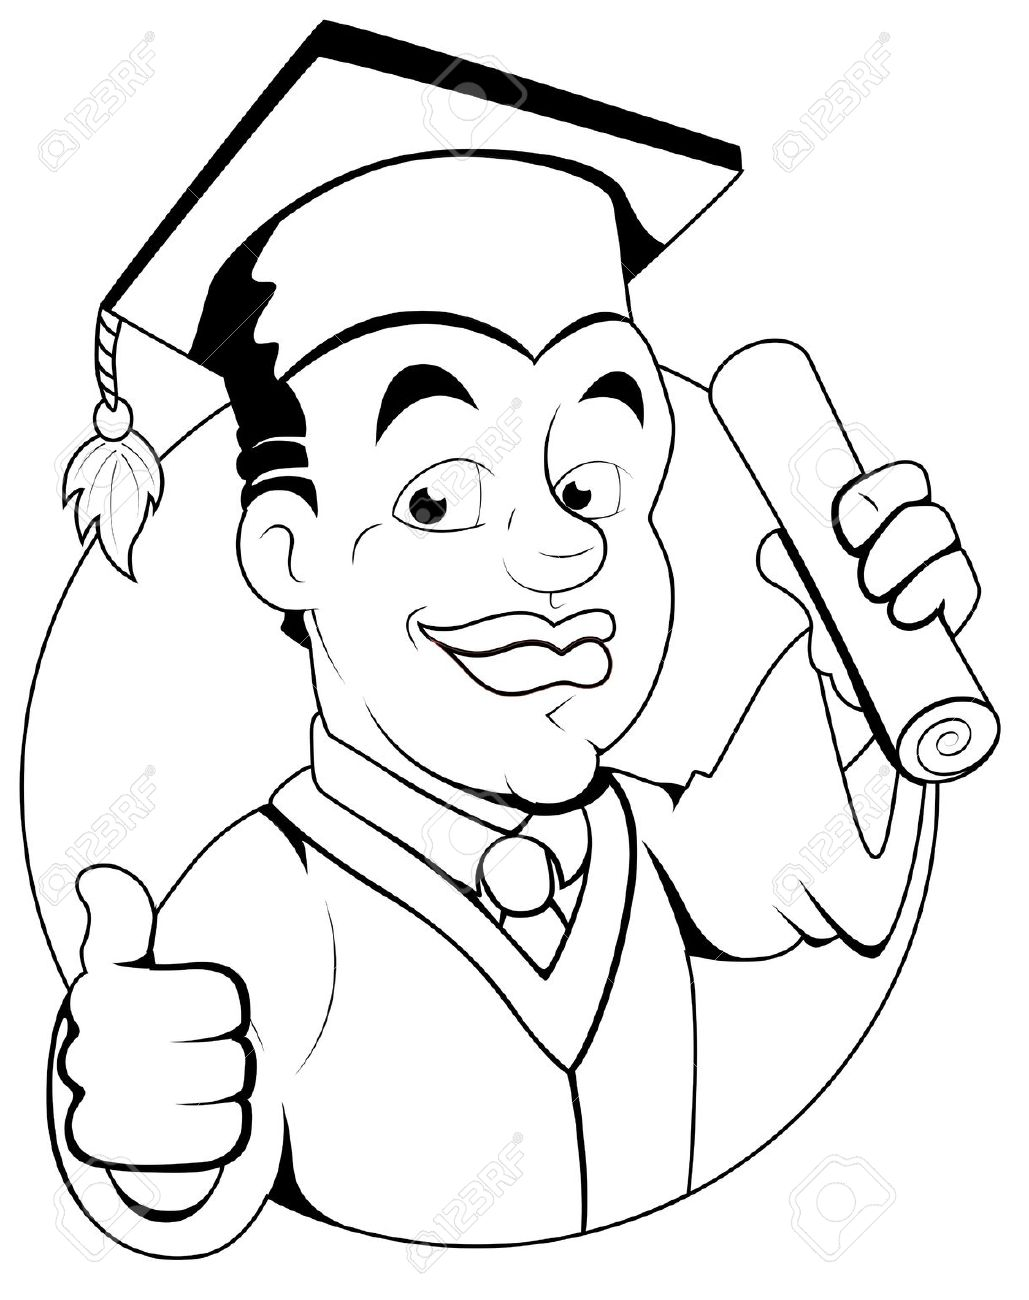 Graduation Drawings Clip Art Graduation Black And White